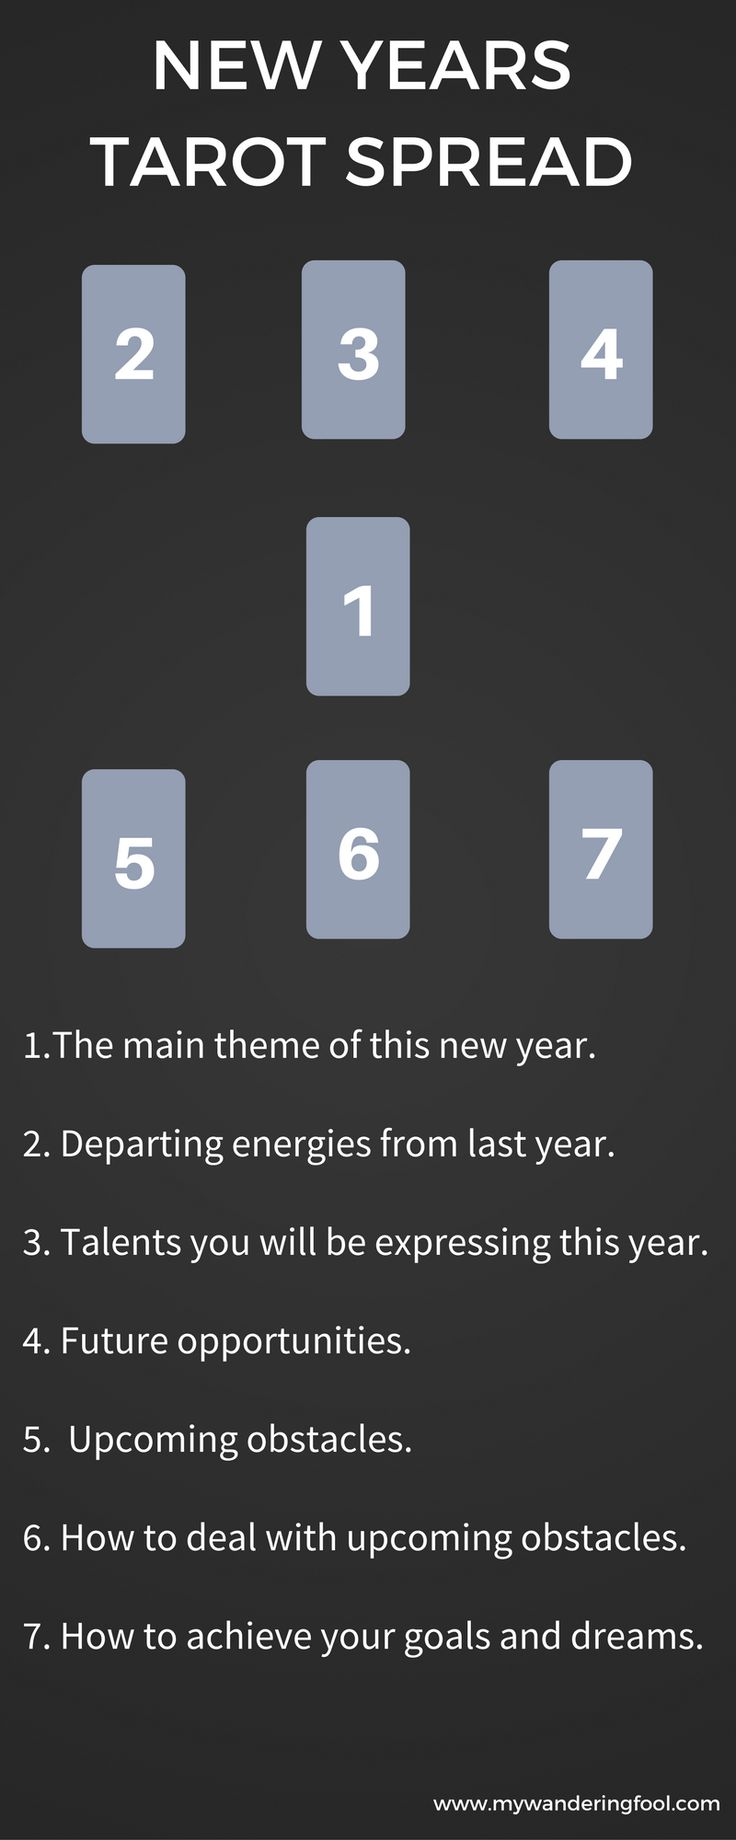 New Year's Tarot Spread. Map out the Year Ahead